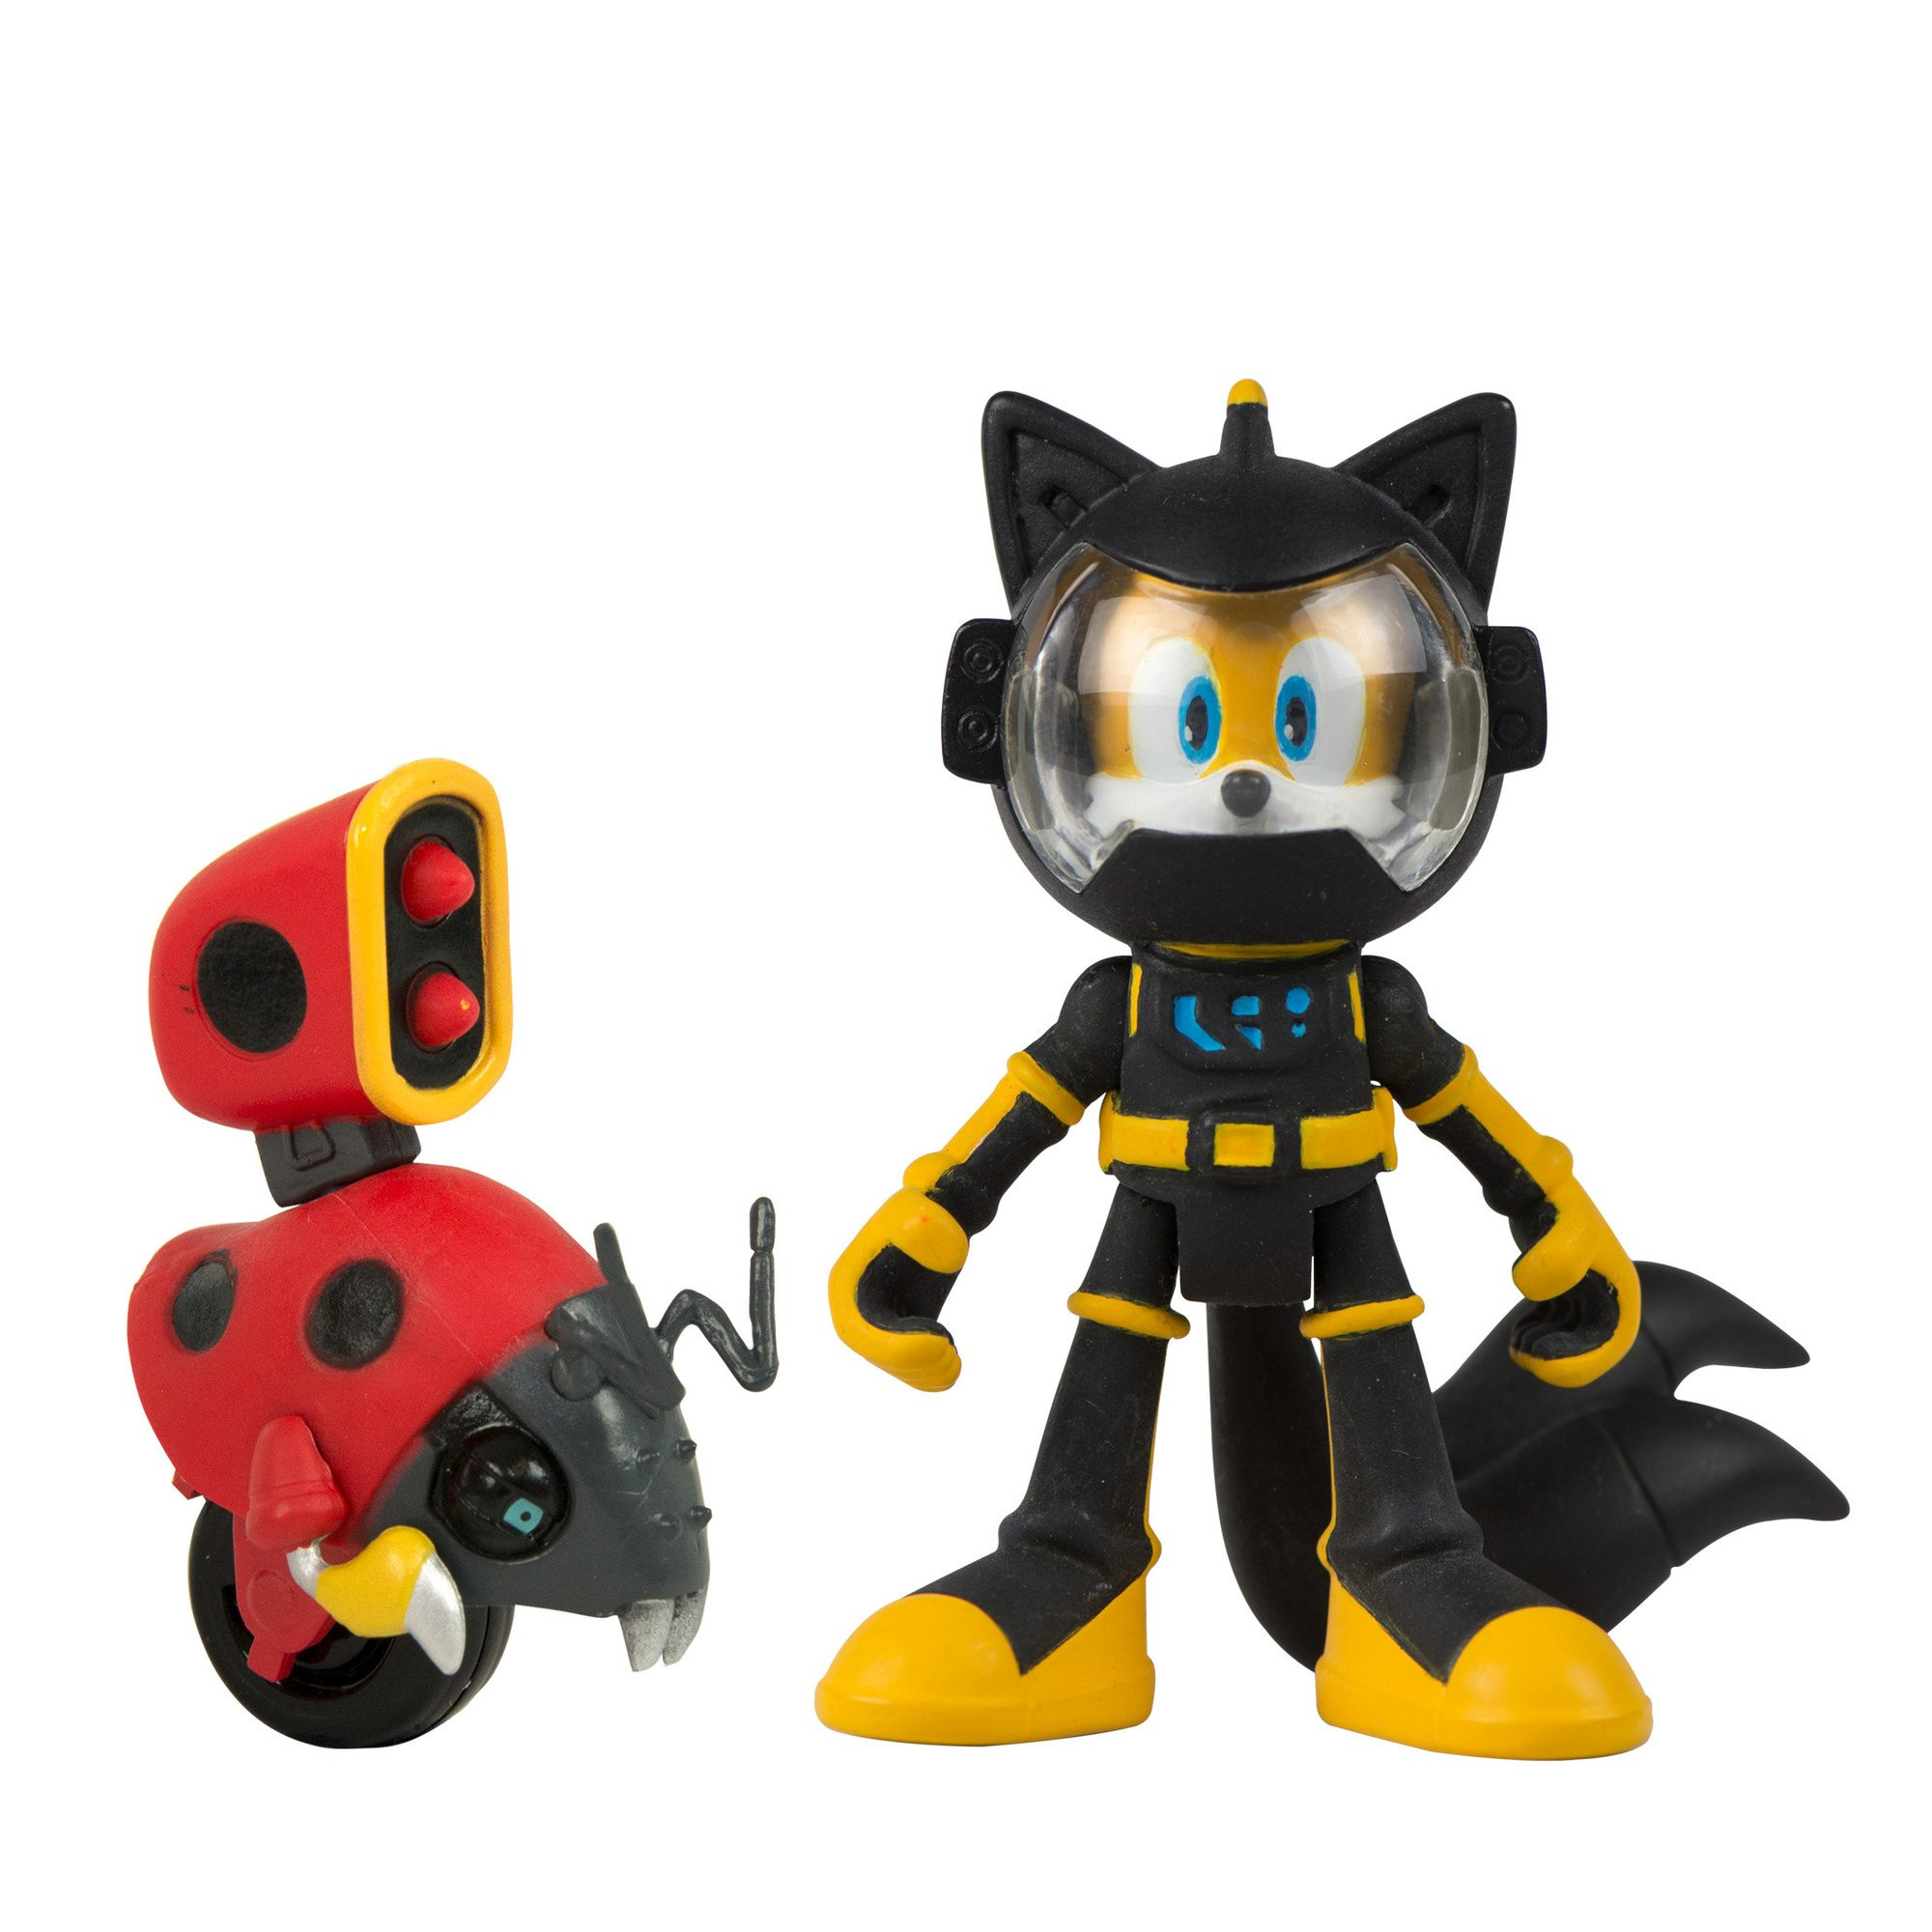 Sonic Boom Tails And Moto Bug 3 Inch Articulated Figures 2 Pack Buy Online In Liechtenstein Sonic The Hedgehog Products In Liechtenstein See Prices Reviews And Free Delivery Over Chf60 Desertcart